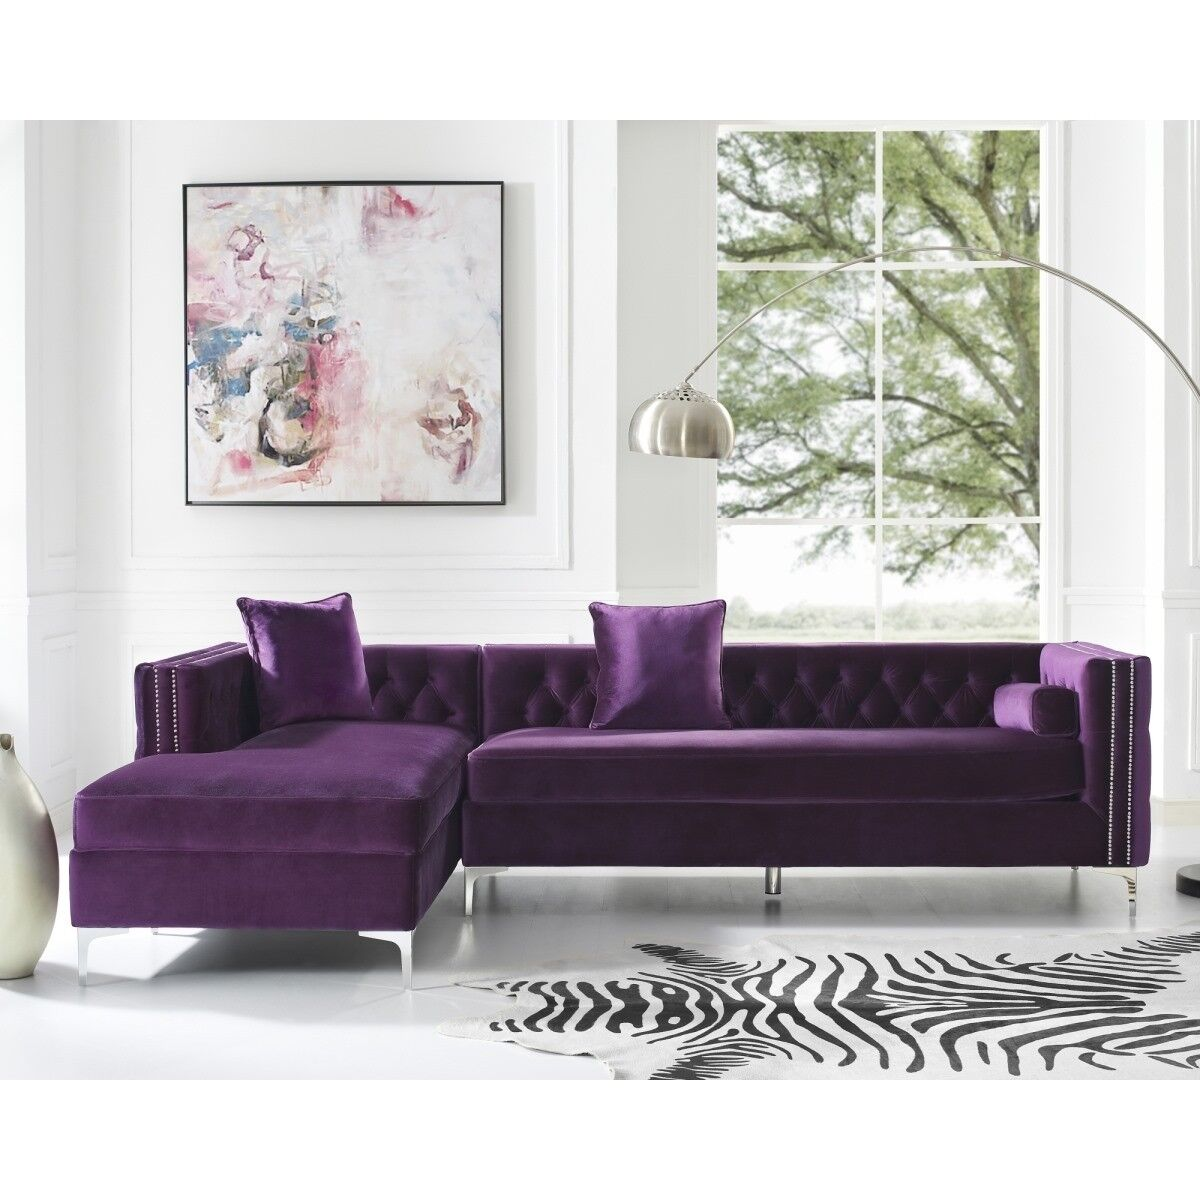 Surprising Details About Posh Living Levi Velvet Tufted With Silver Y Leg Chaise Sectional Sofa Purple Ncnpc Chair Design For Home Ncnpcorg